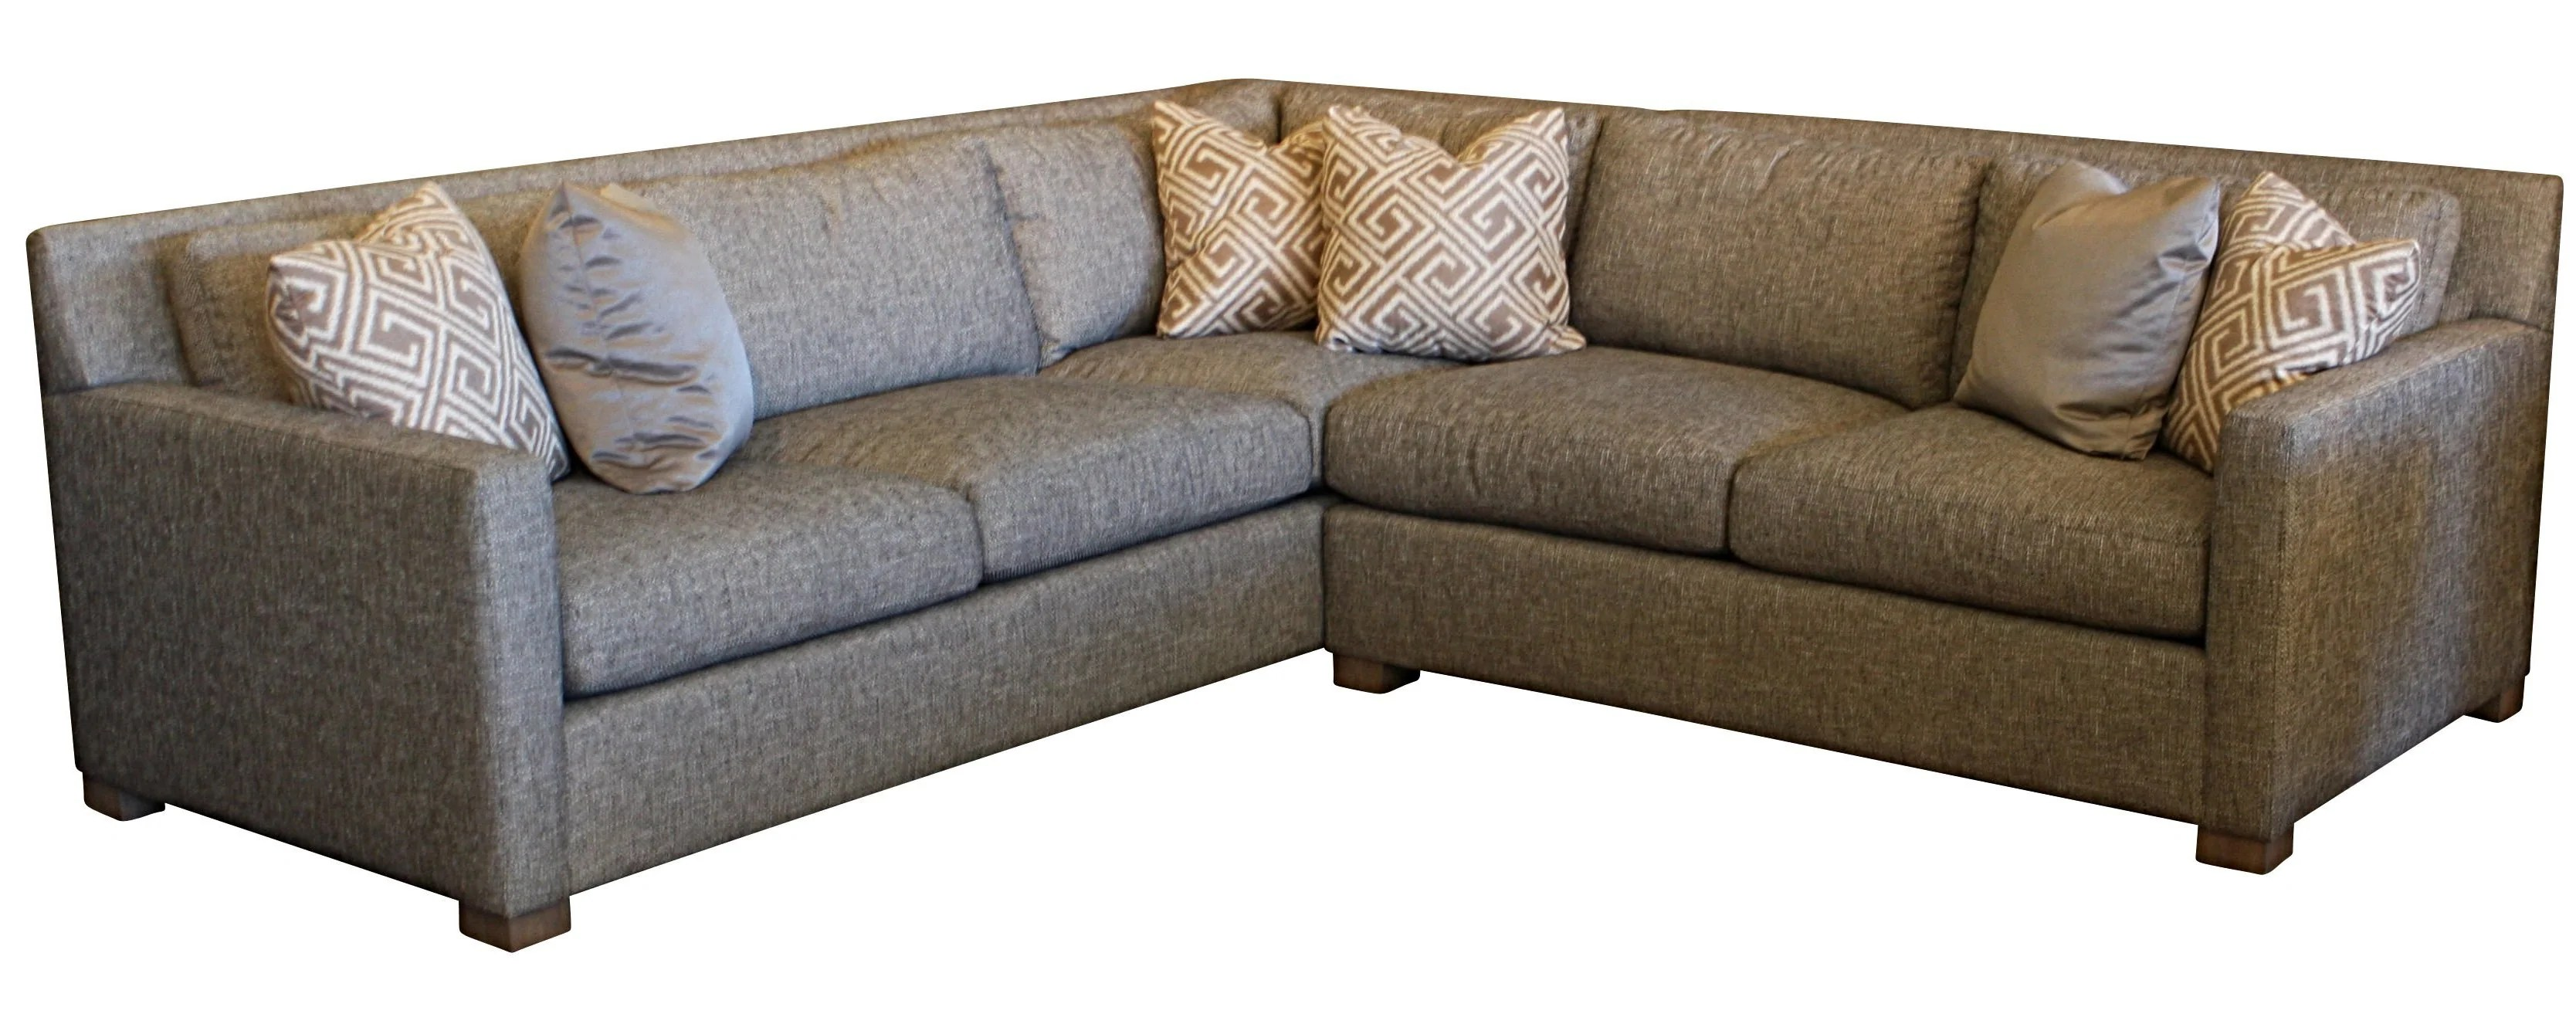 custom sectional sofa wooden chair designs seattle mortise tenon